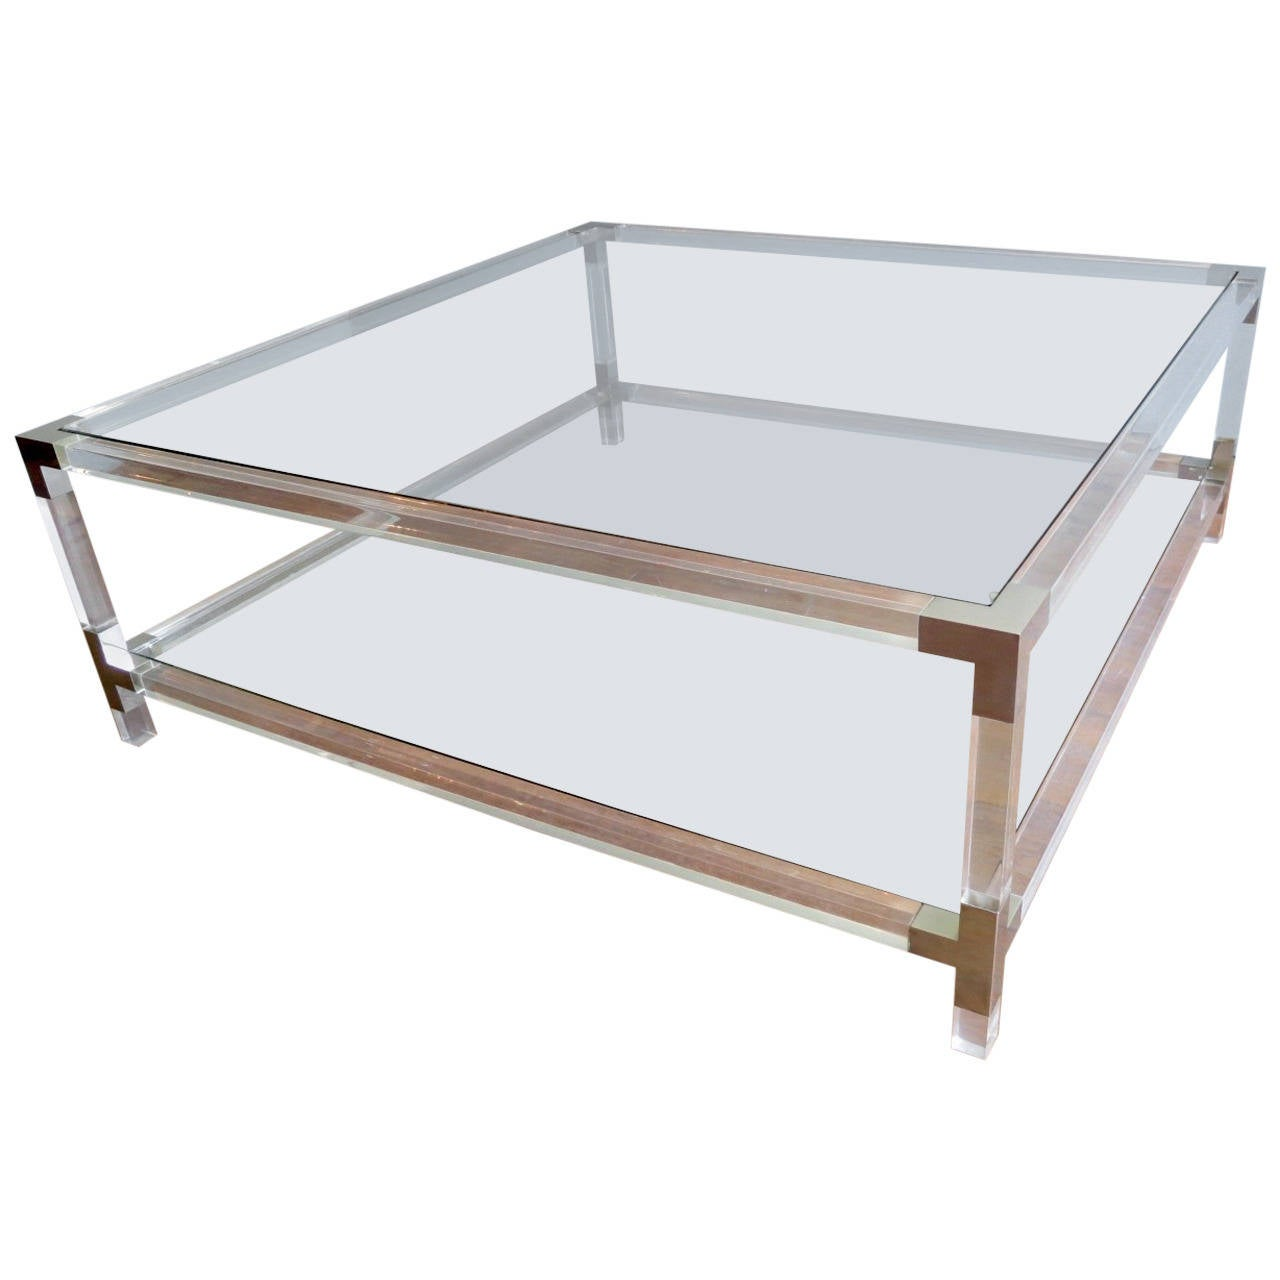 Large square lucite coffee table at 1stdibs for Used acrylic coffee table